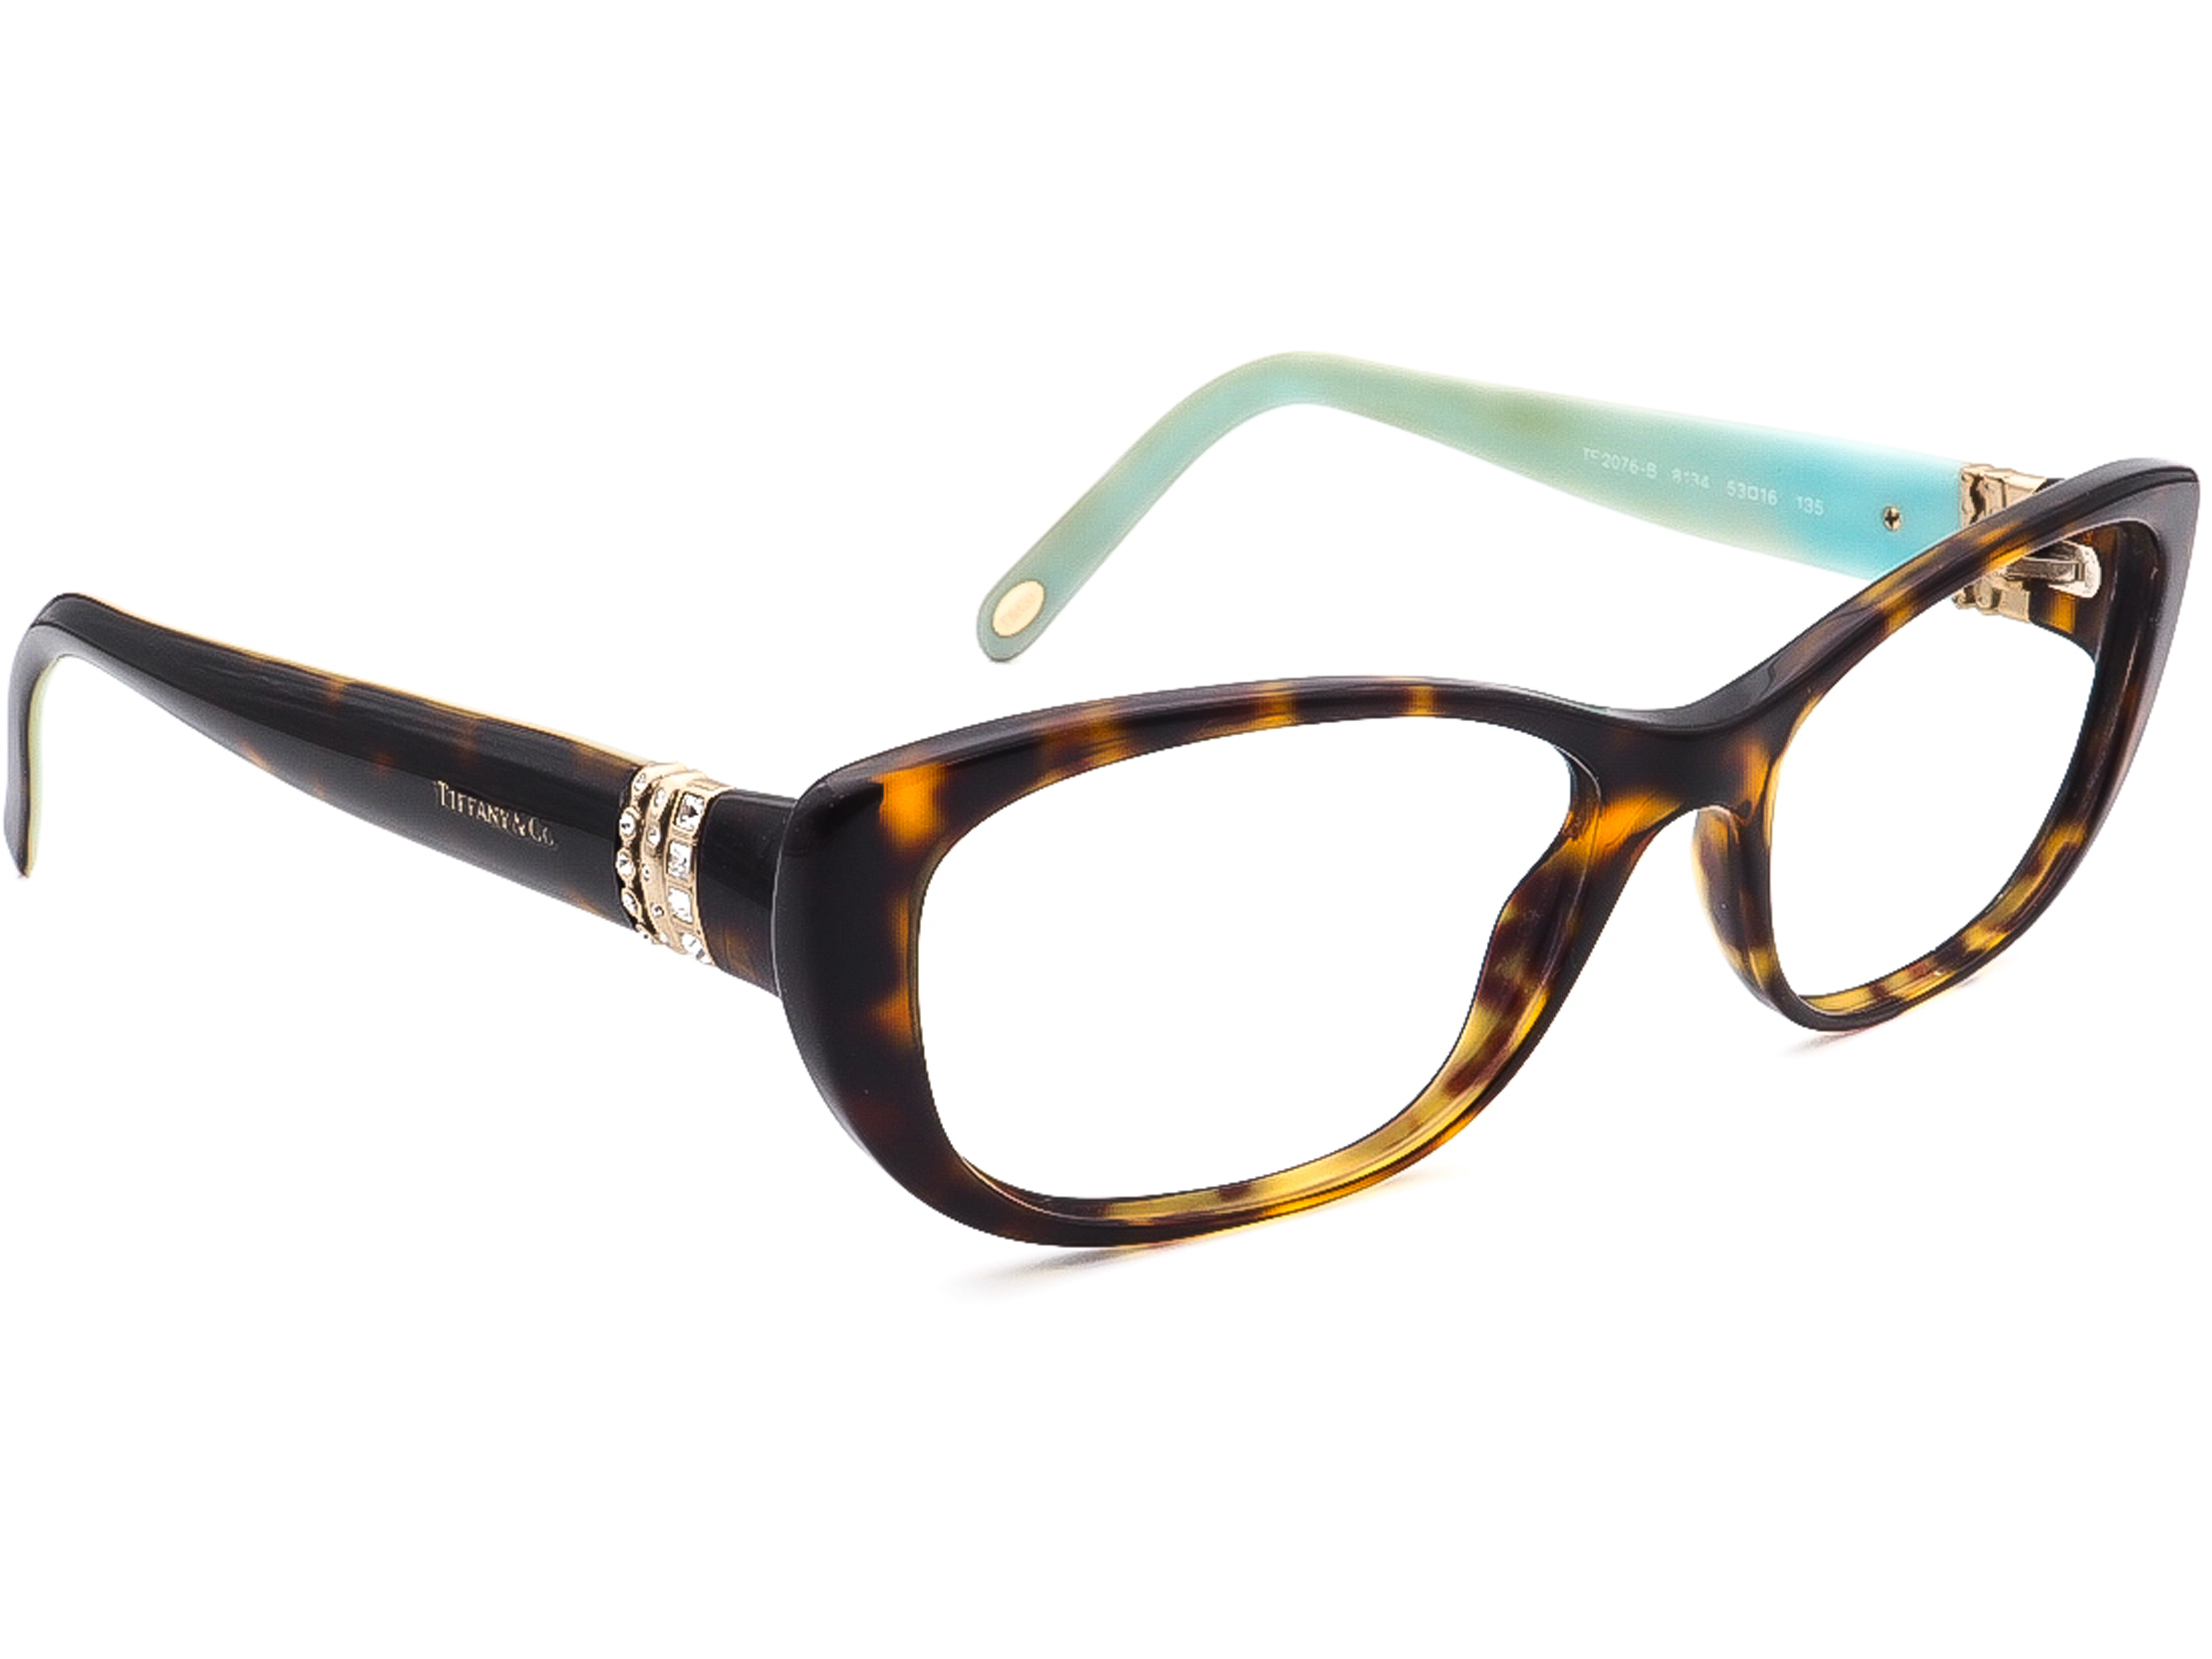 Tiffany & Co. TF 2076-B 8134 Eyeglasses